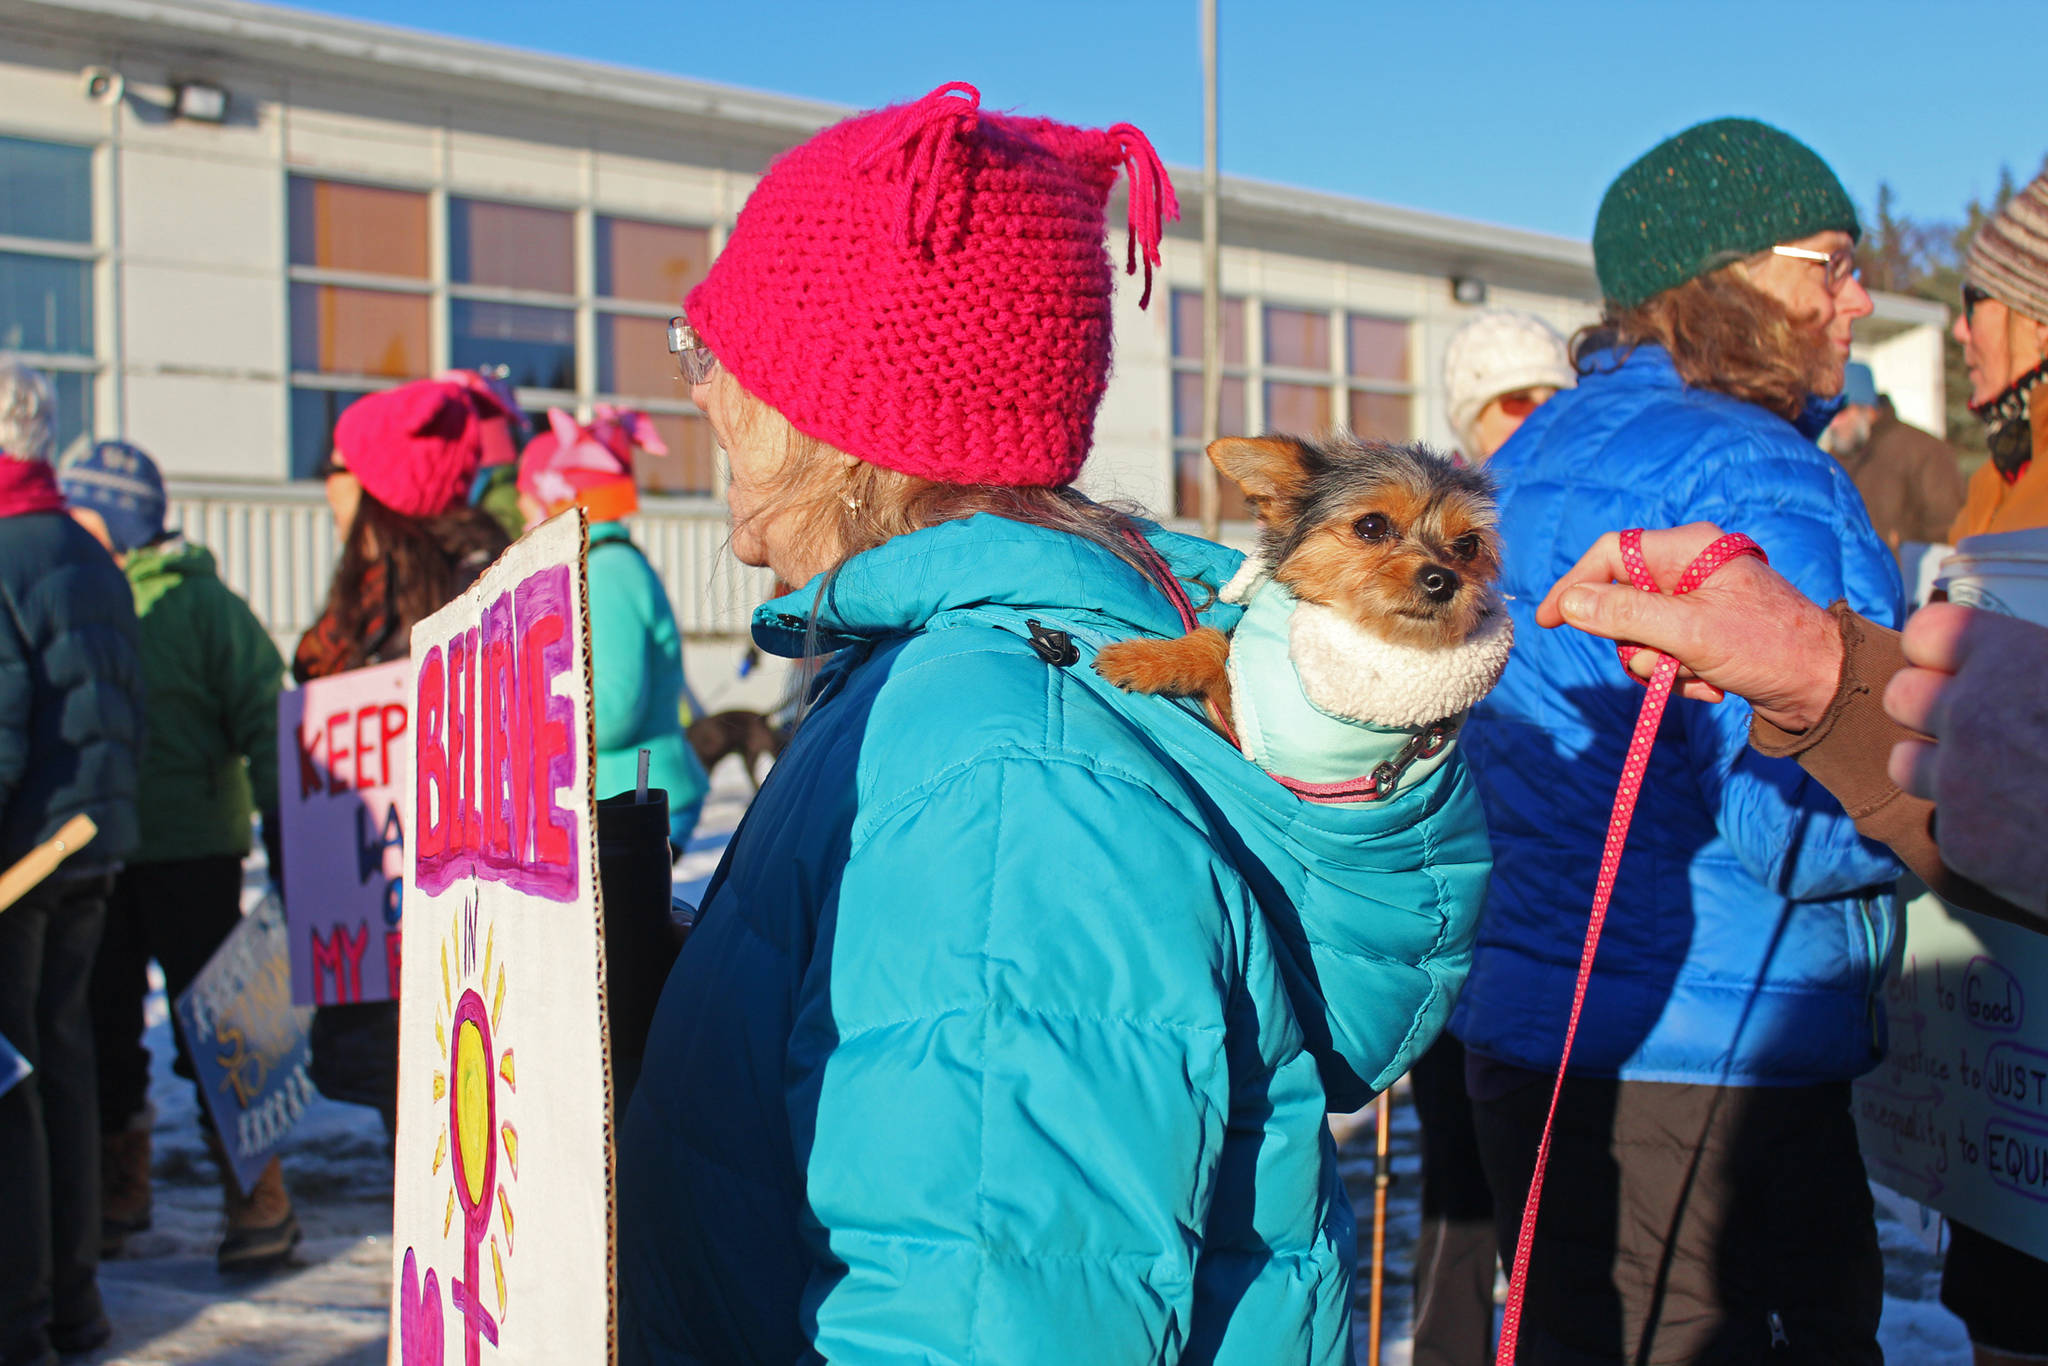 A small dog hitches a ride in the hood of a marcher Saturday, Jan. 19, 2019 at the Homer Education and Recreation Complex in Homer, Alaska, shortly before the Women's March on Homer. (Photo by Megan Pacer/Homer News)